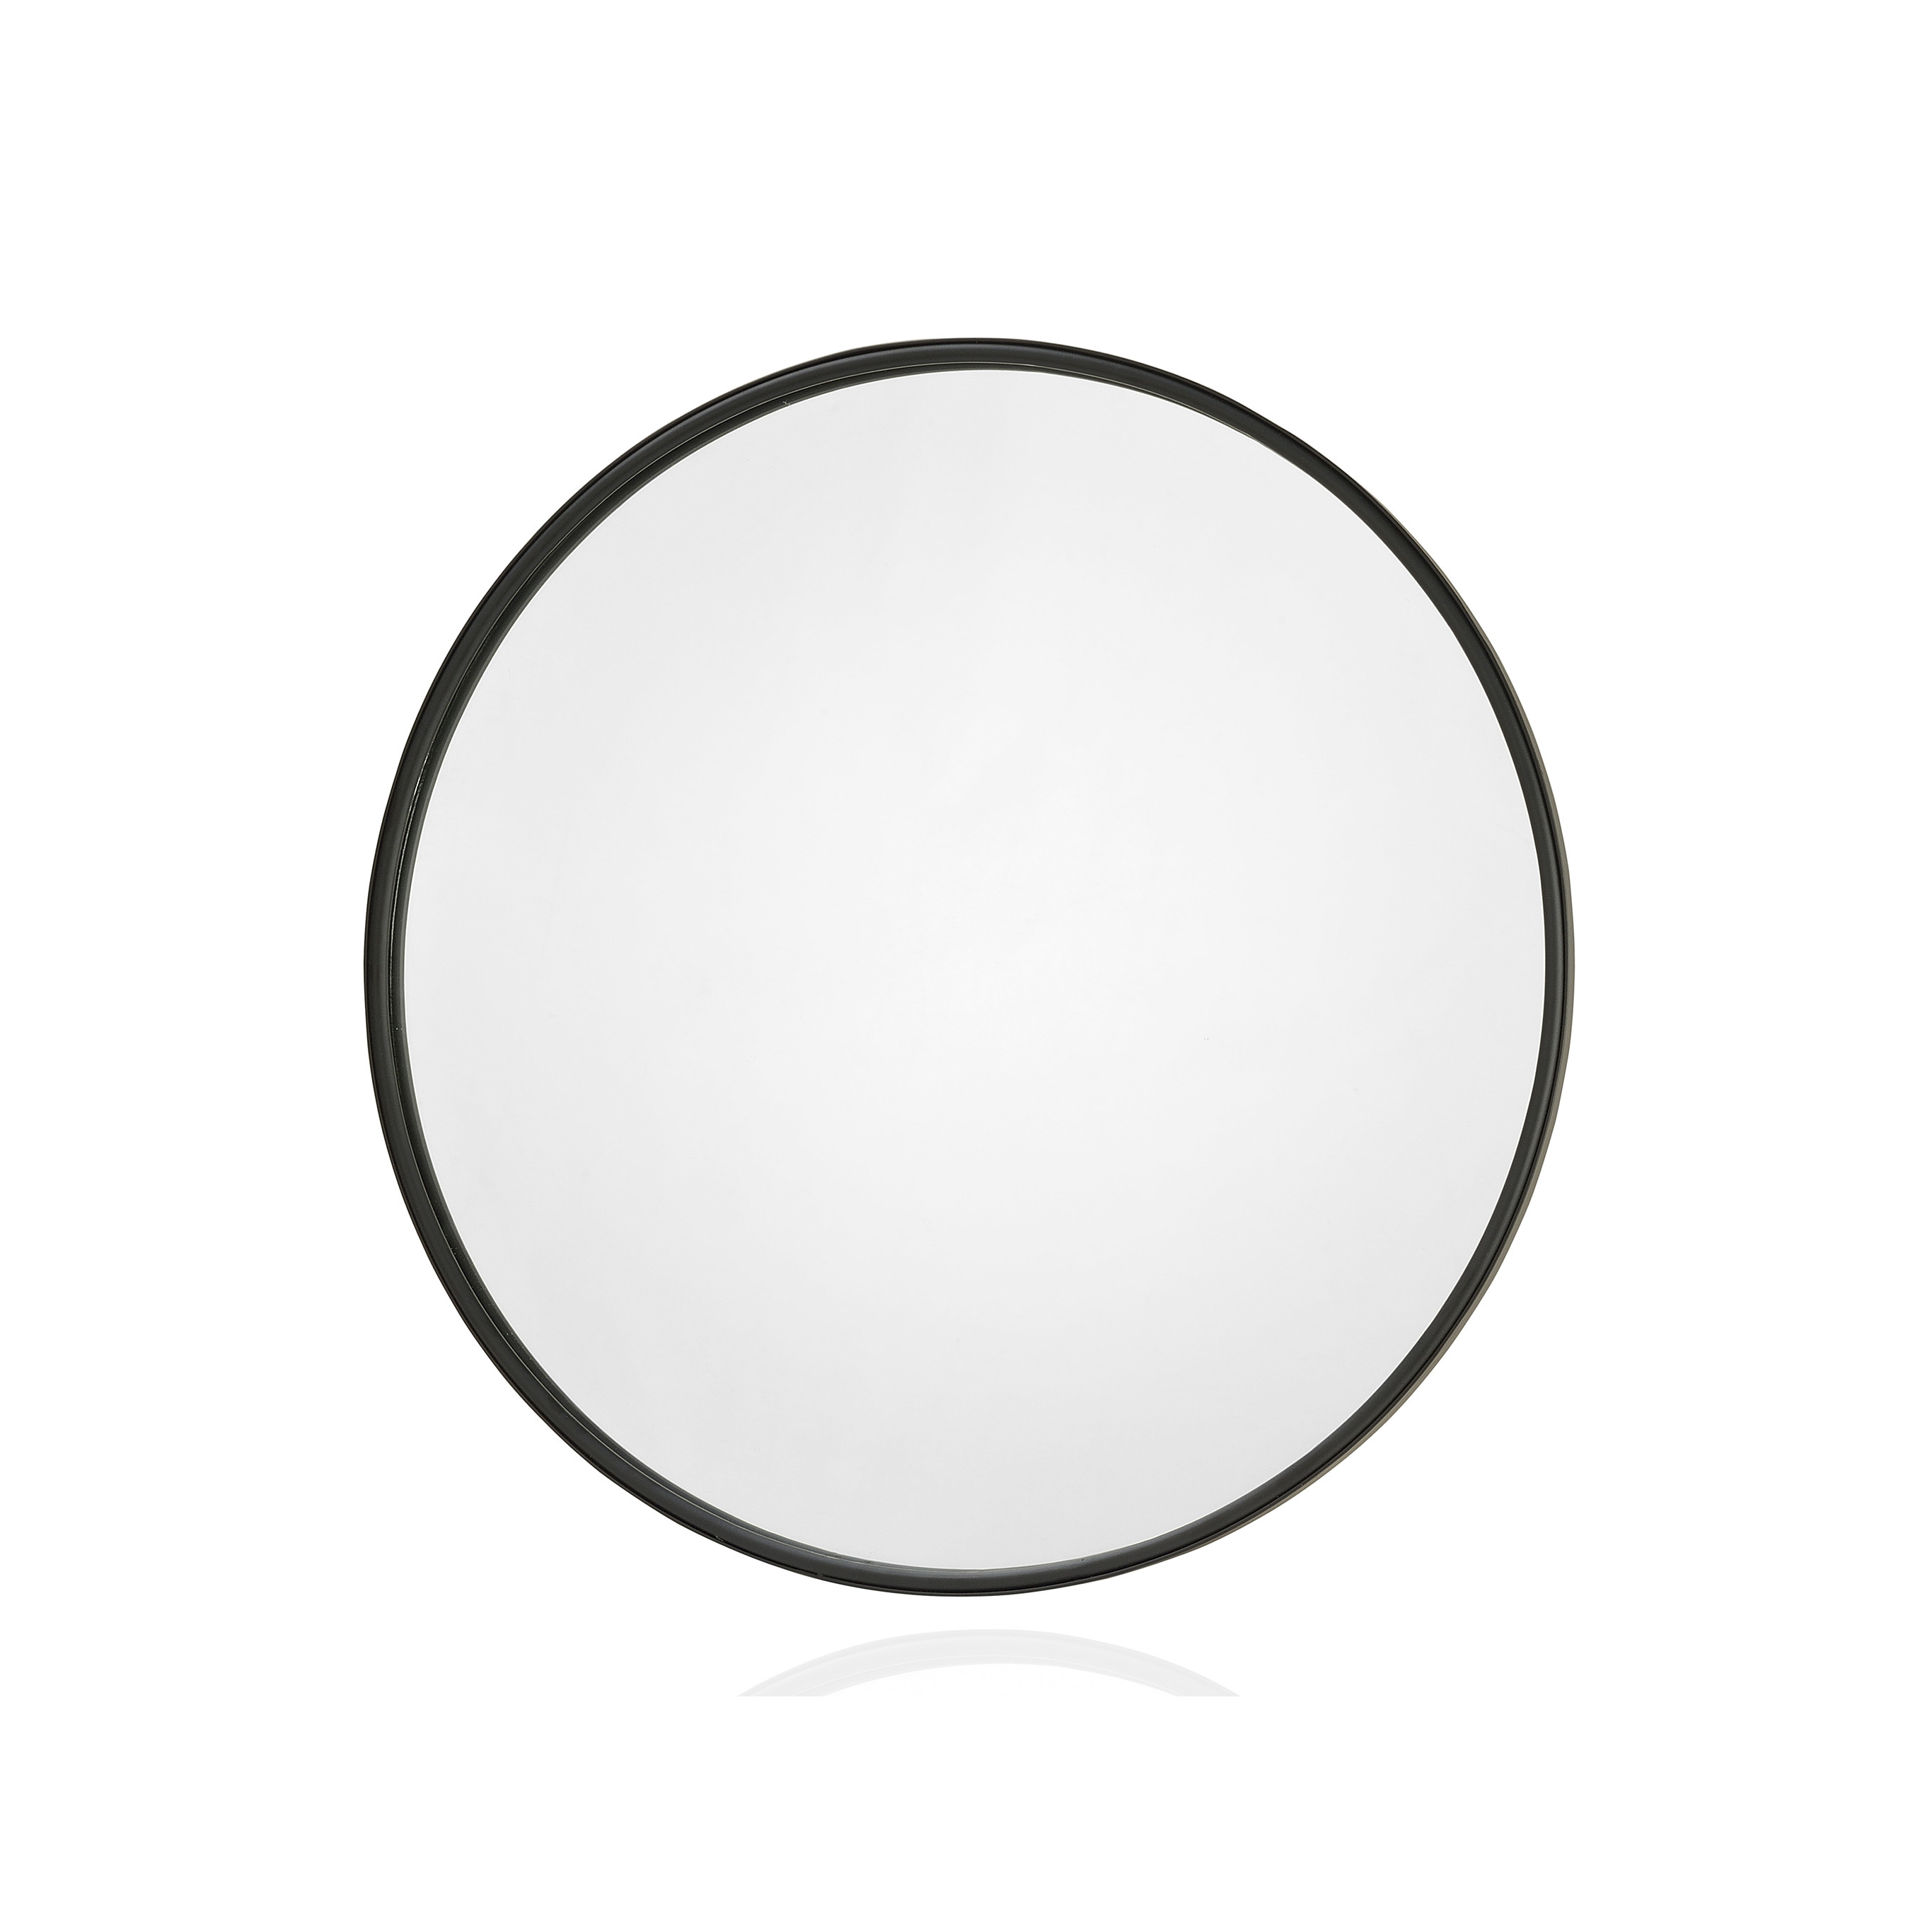 Black Round Wall Mirrors Intended For Trendy Round Wall Mirror (View 19 of 20)